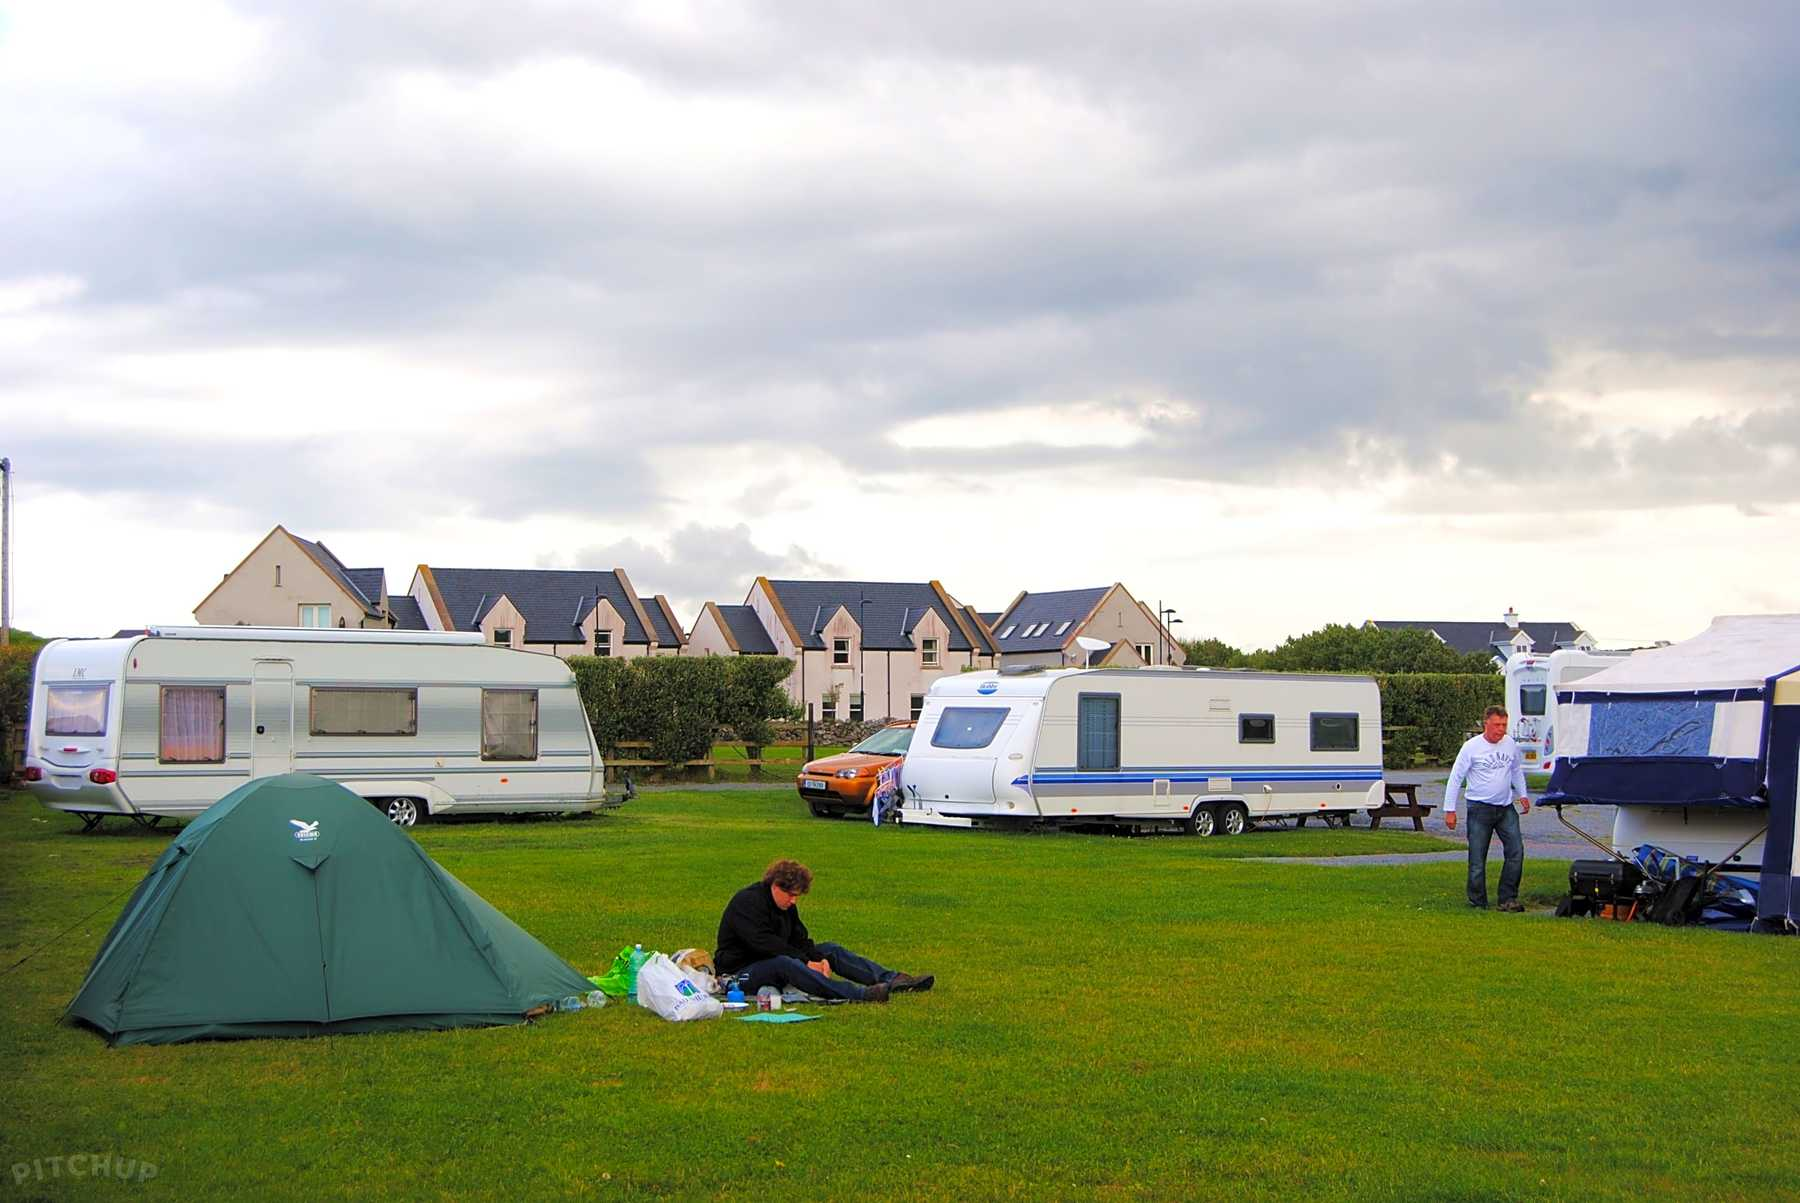 What Is a Full Hookup at an RV Park? - Travel Tips - USA Today